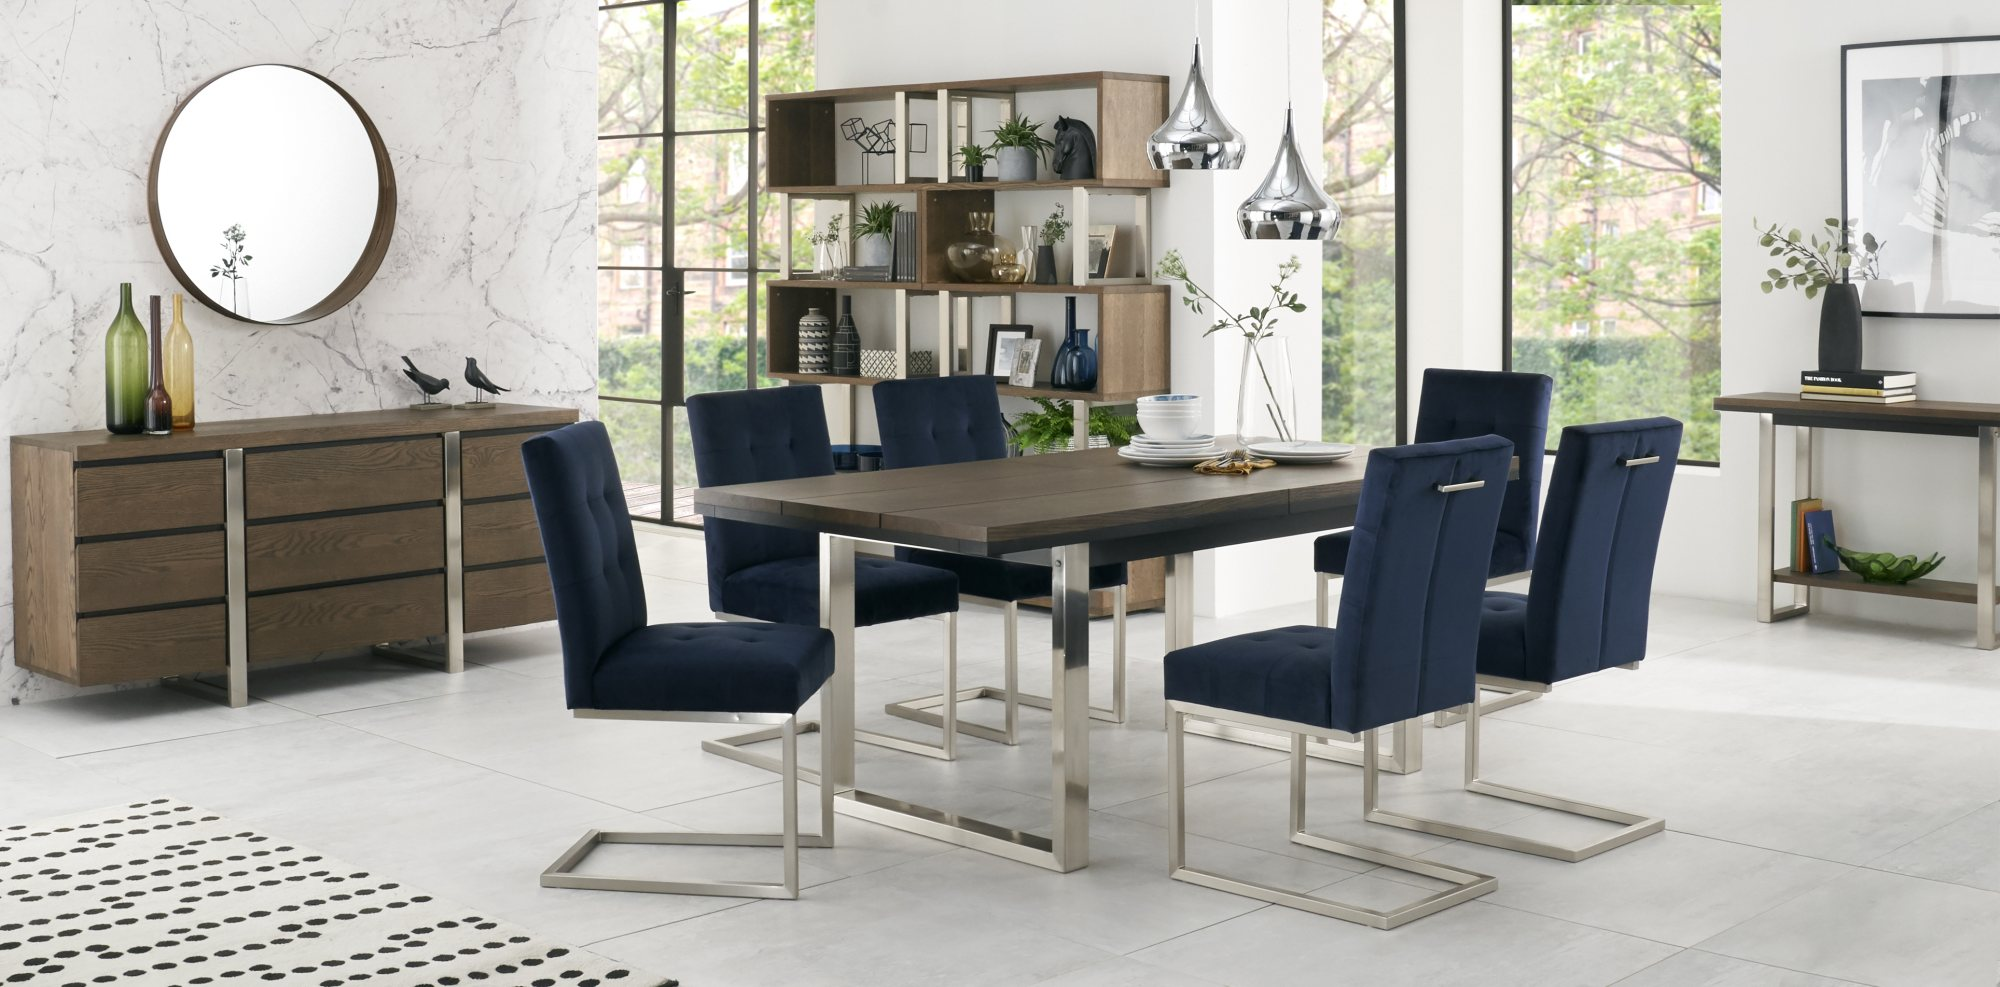 BRINDISI BLUE DINING CHAIR - FRONT DETAIL SETTING